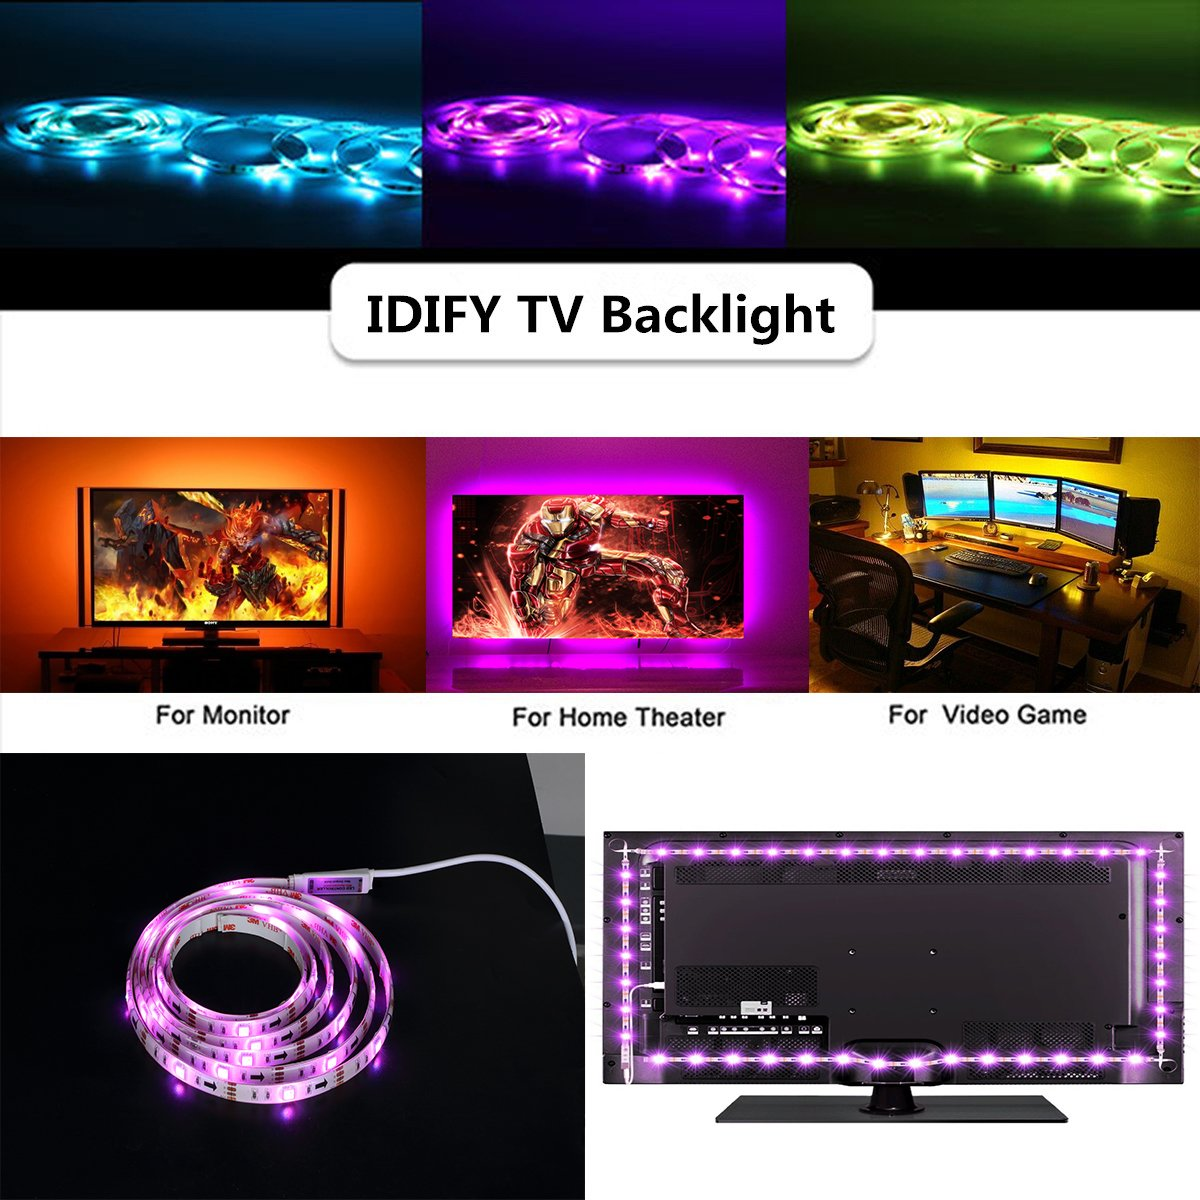 LED Strip Lights for 55 60 inches Back of TV Decor USB Operate 11.28ft Waterproof RGB Backlighting with 20 Colors Changing Remote (White 55'' 60'') by IDIFY (Image #3)